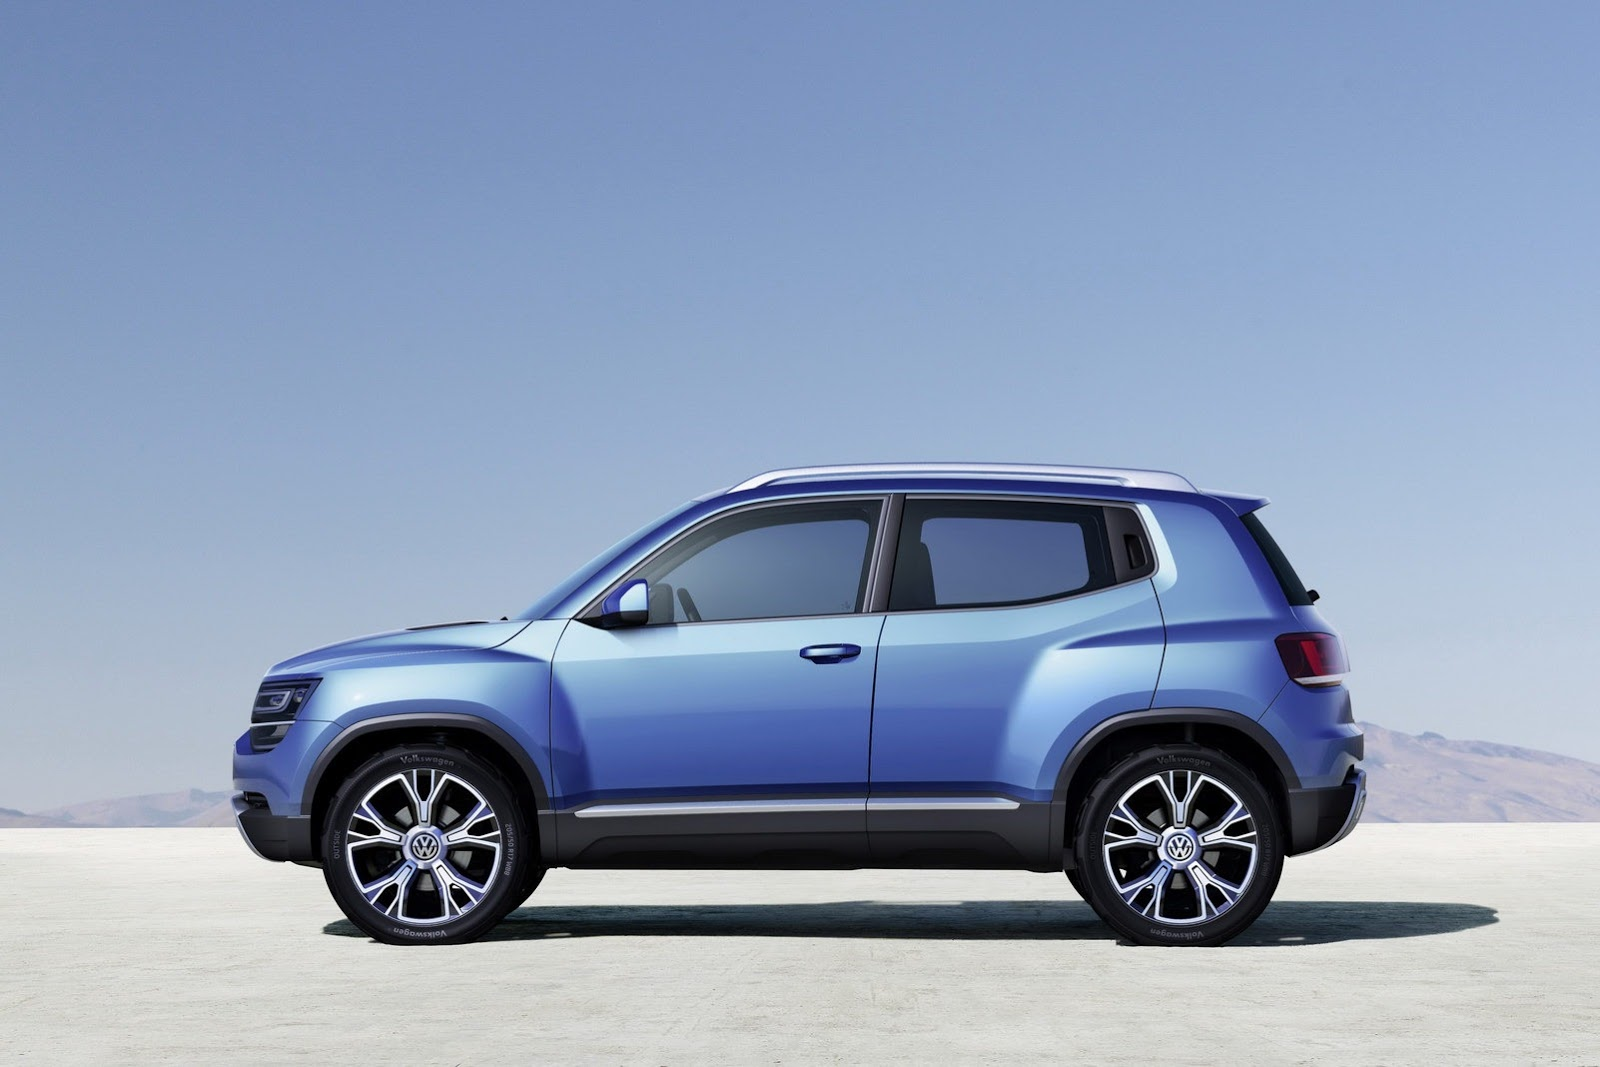 Volkswagen planning a compact SUV for 2016